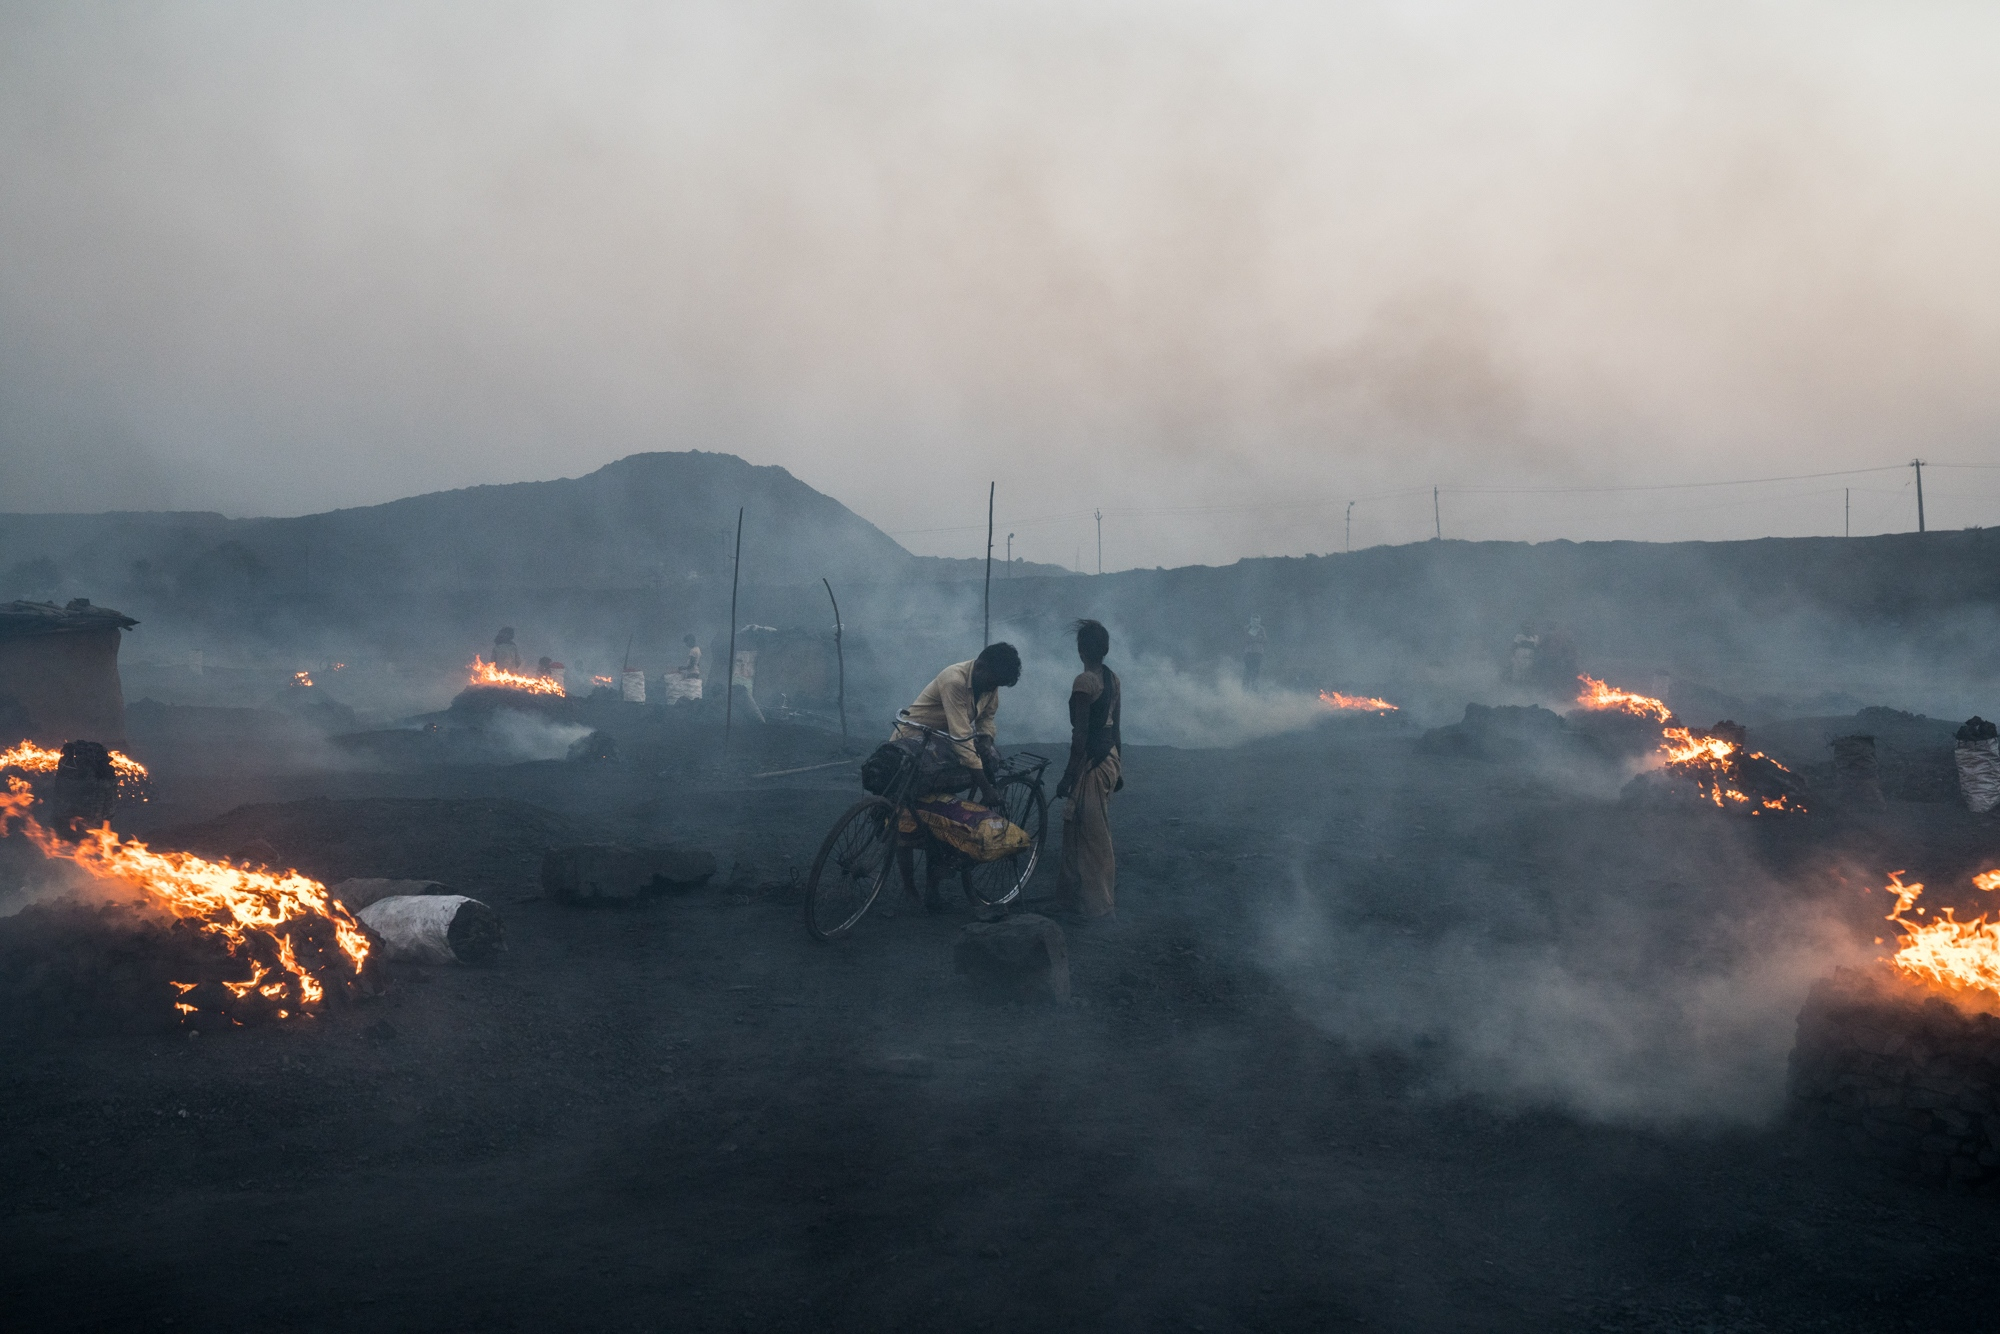 Miners off-load coal in a charcoal-producing area, which constantly blankets the region in thick smoke. India.